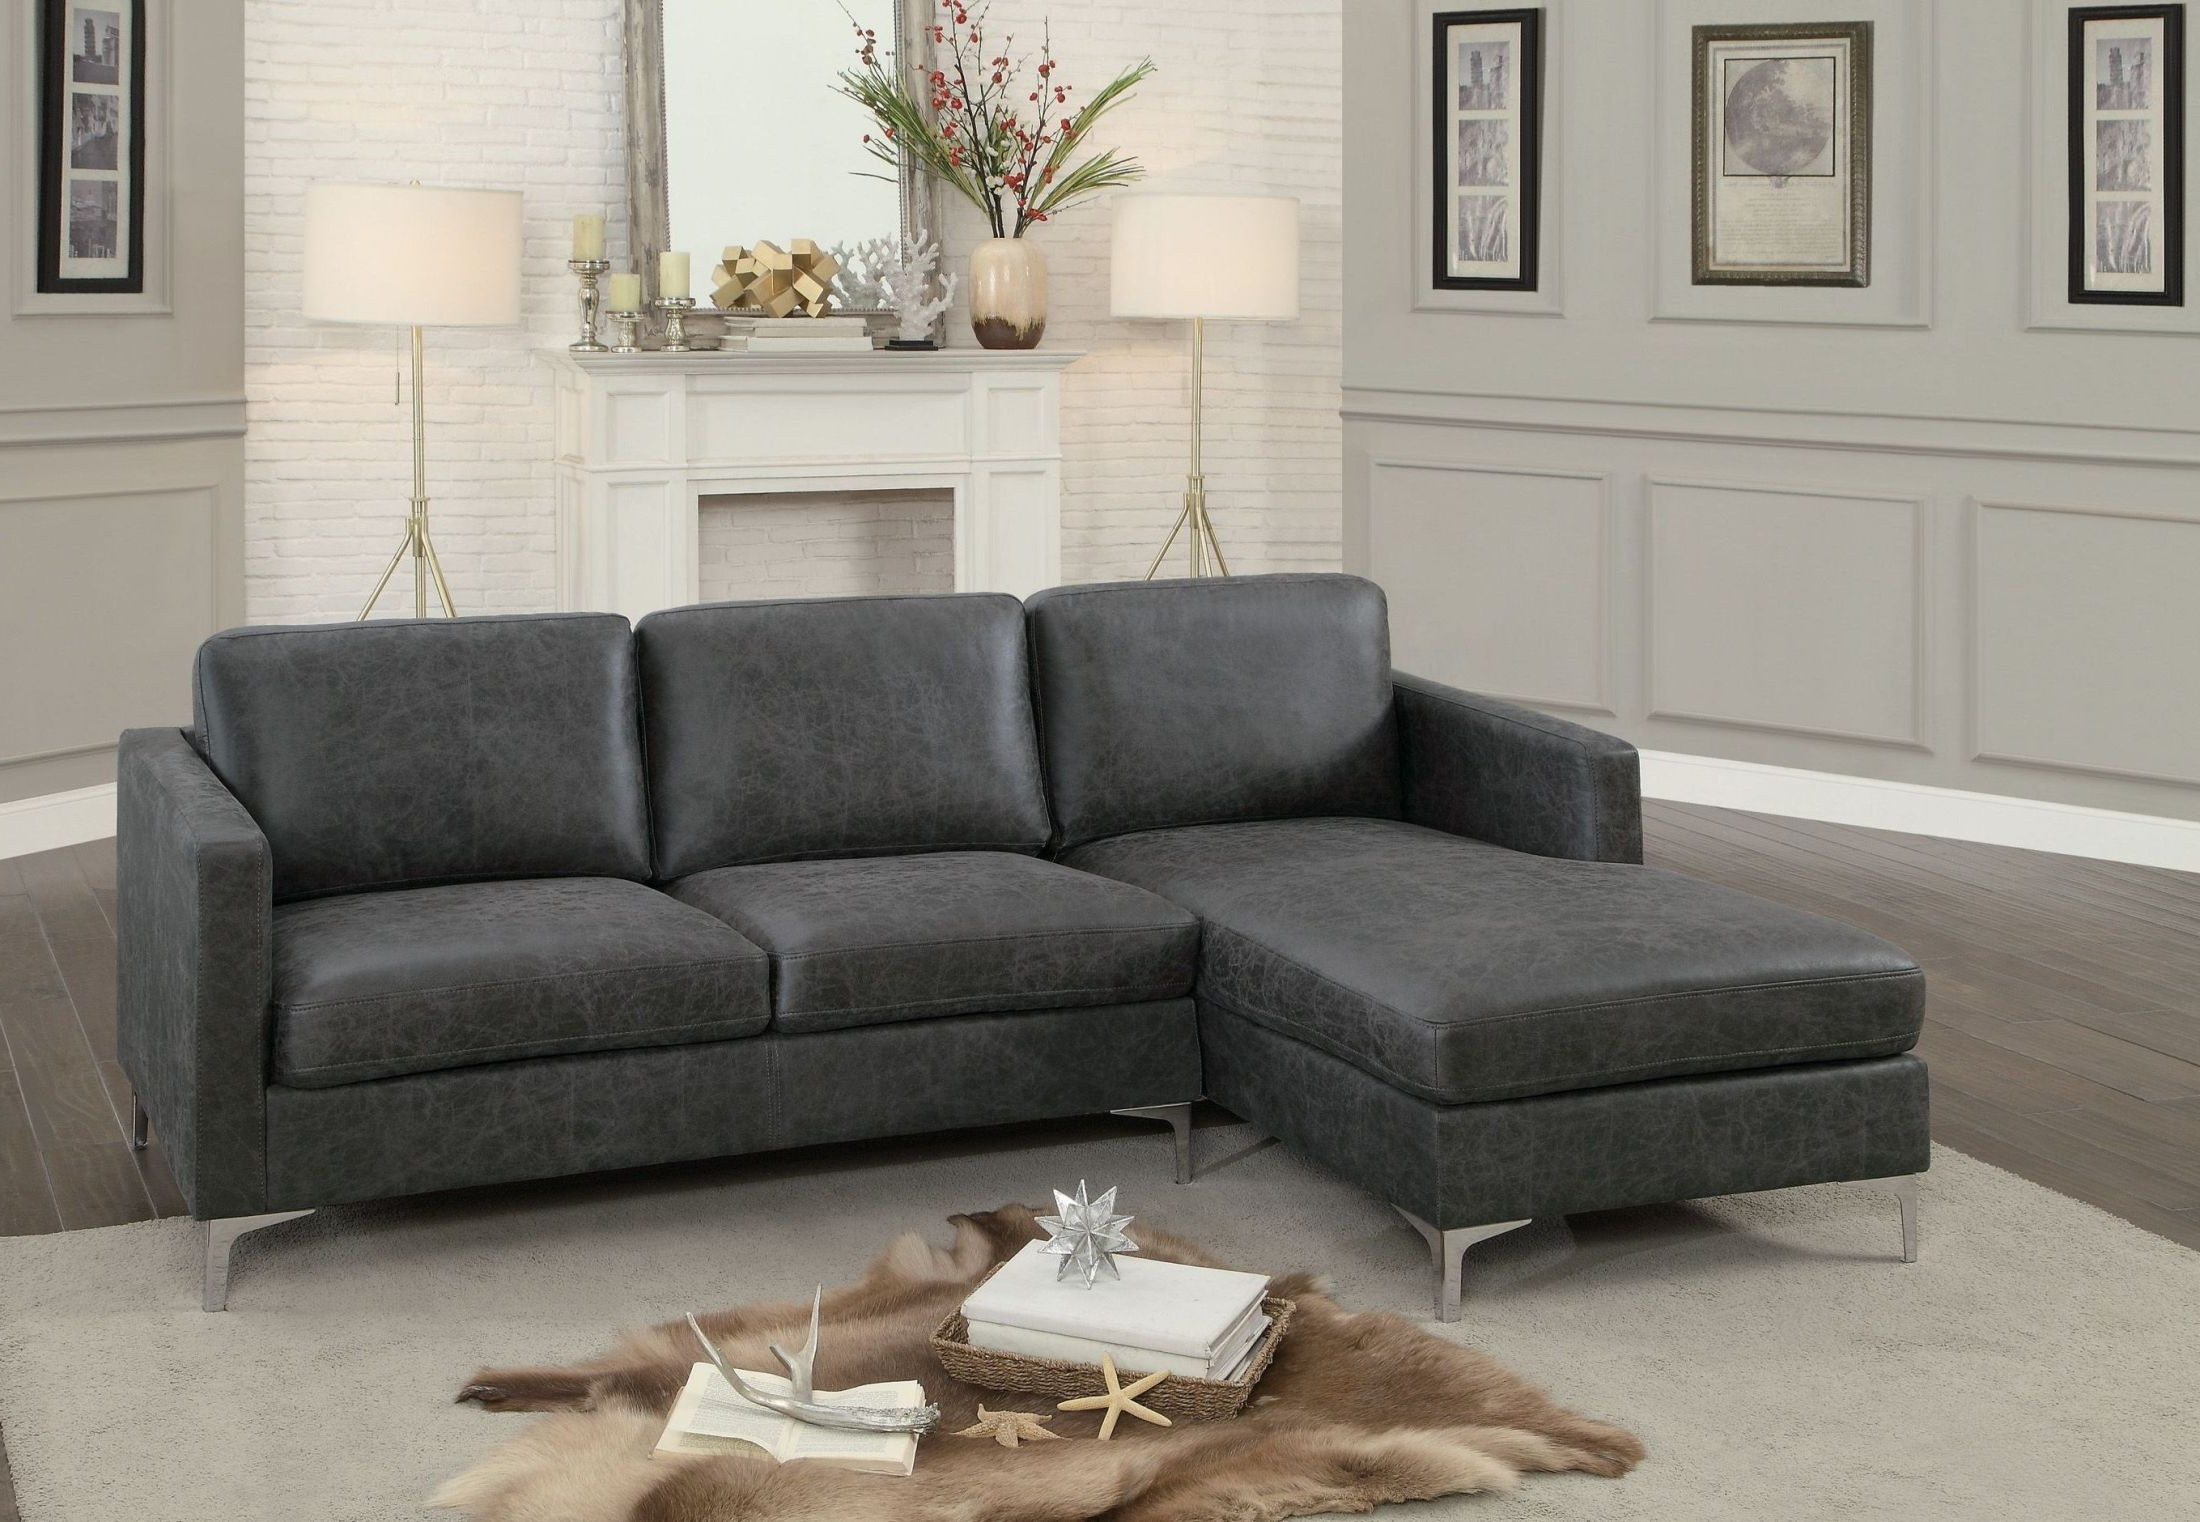 Breaux Grey Sectional Sofa From Homelegance (View 3 of 15)